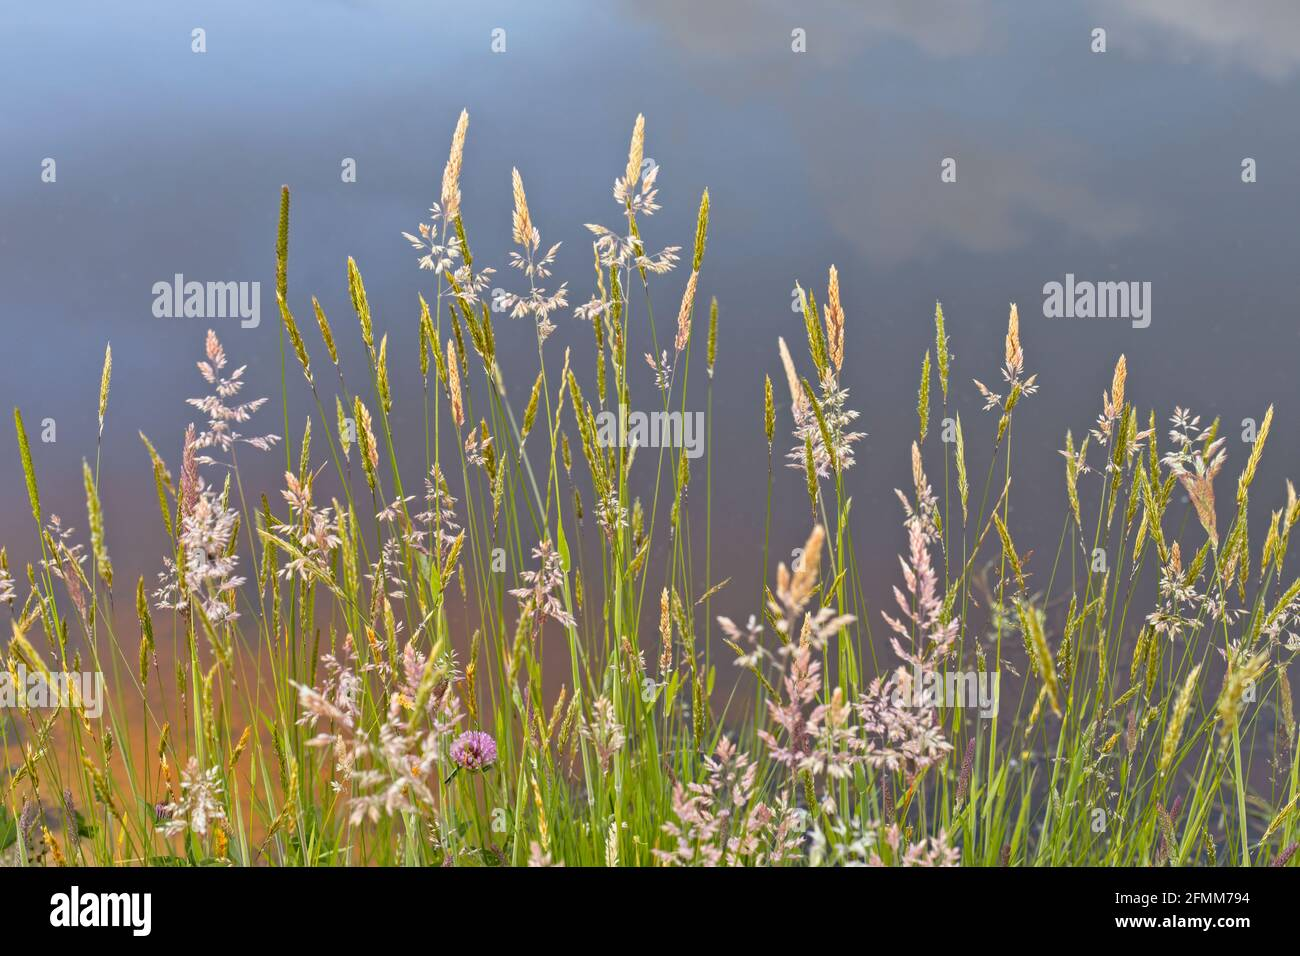 Summer grasses with seed heads beside a pond with the sky reflected in the water in the background. Stock Photo